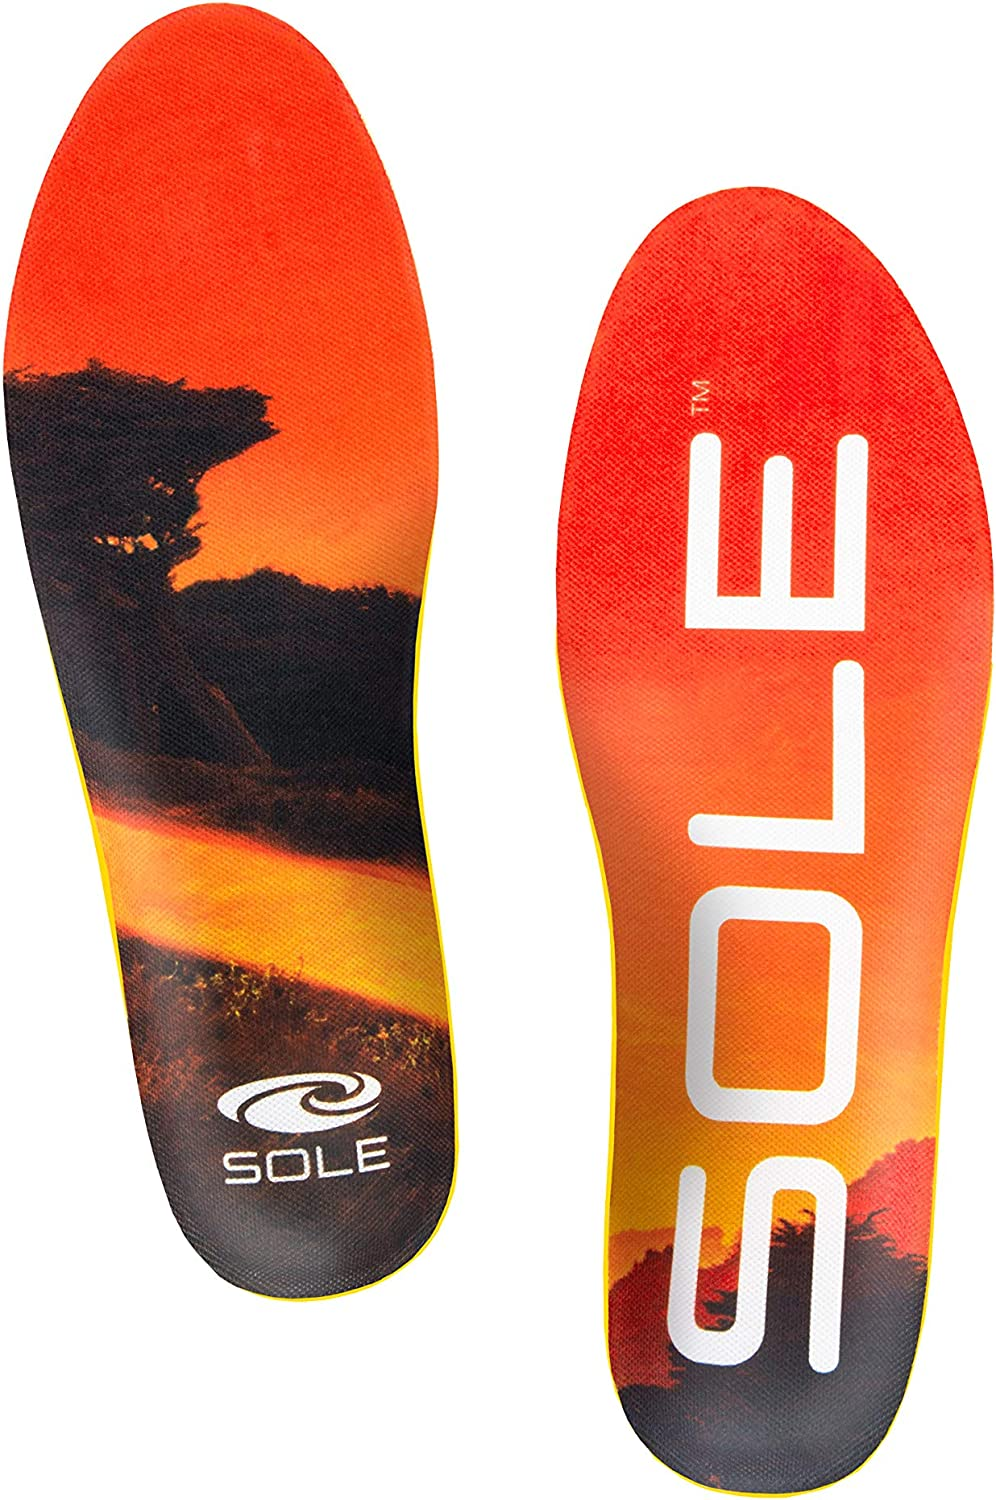 SOLE Performance Medium Cork Shoe Insoles